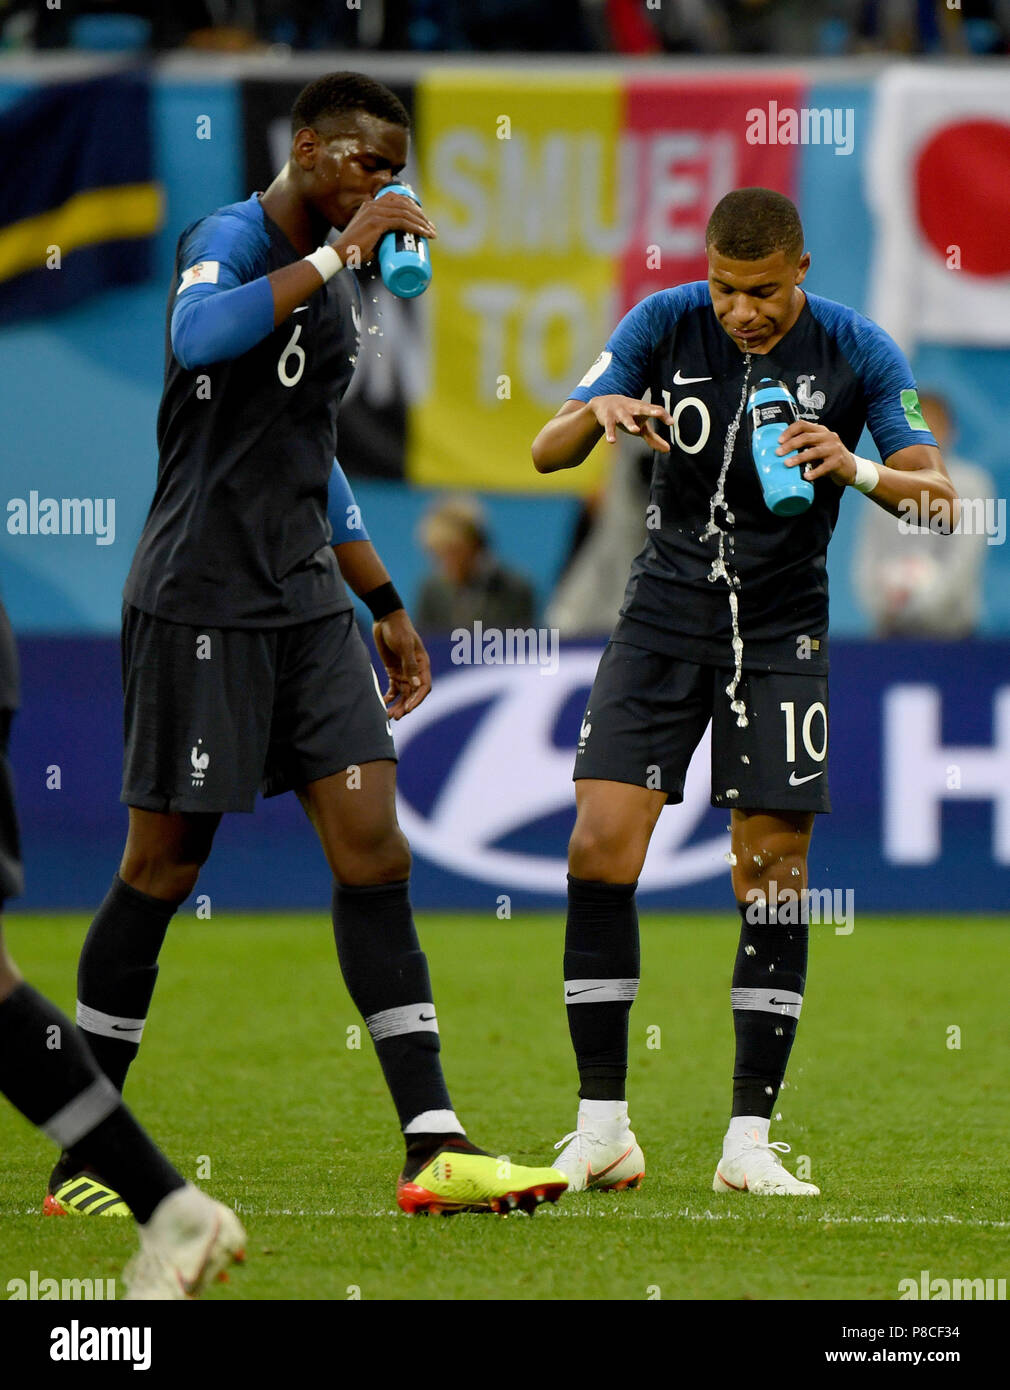 Kylian Mbappe (R) and Paul Pogba of France are seen during the 2018 FIFA  World Cup semi-final match between France and Belgium in Saint Petersburg 1c3324360f351